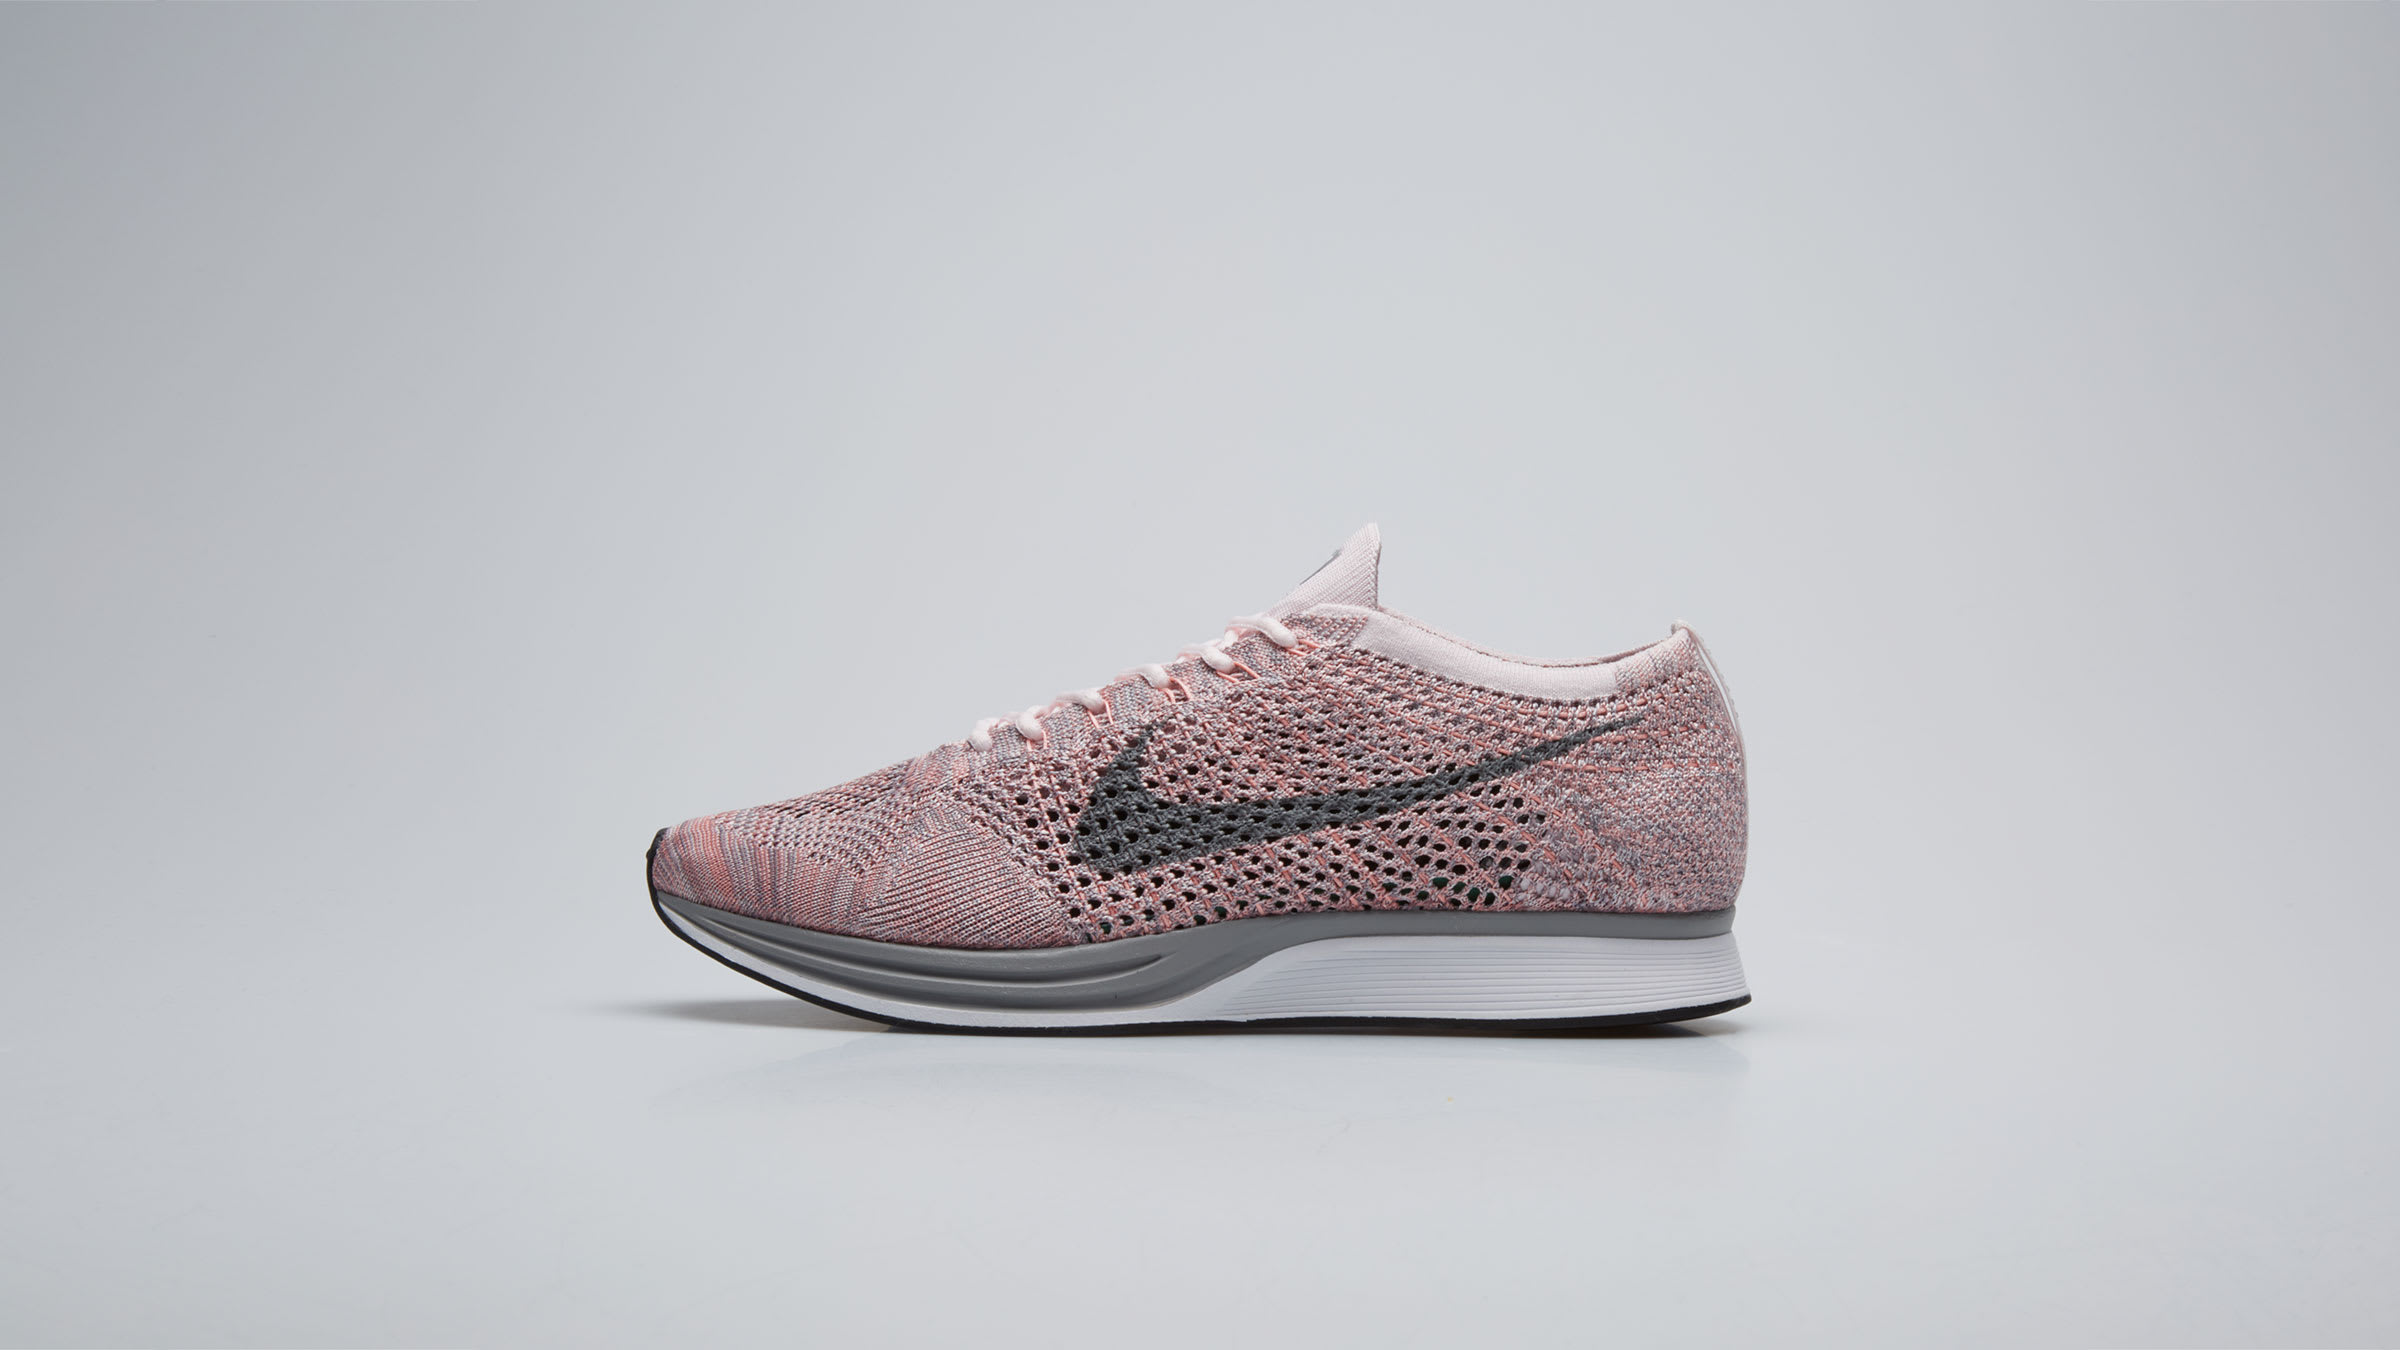 uk availability 8457f 24e77 Nike Flyknit Racer Pearl Pink   Cool Grey   END.